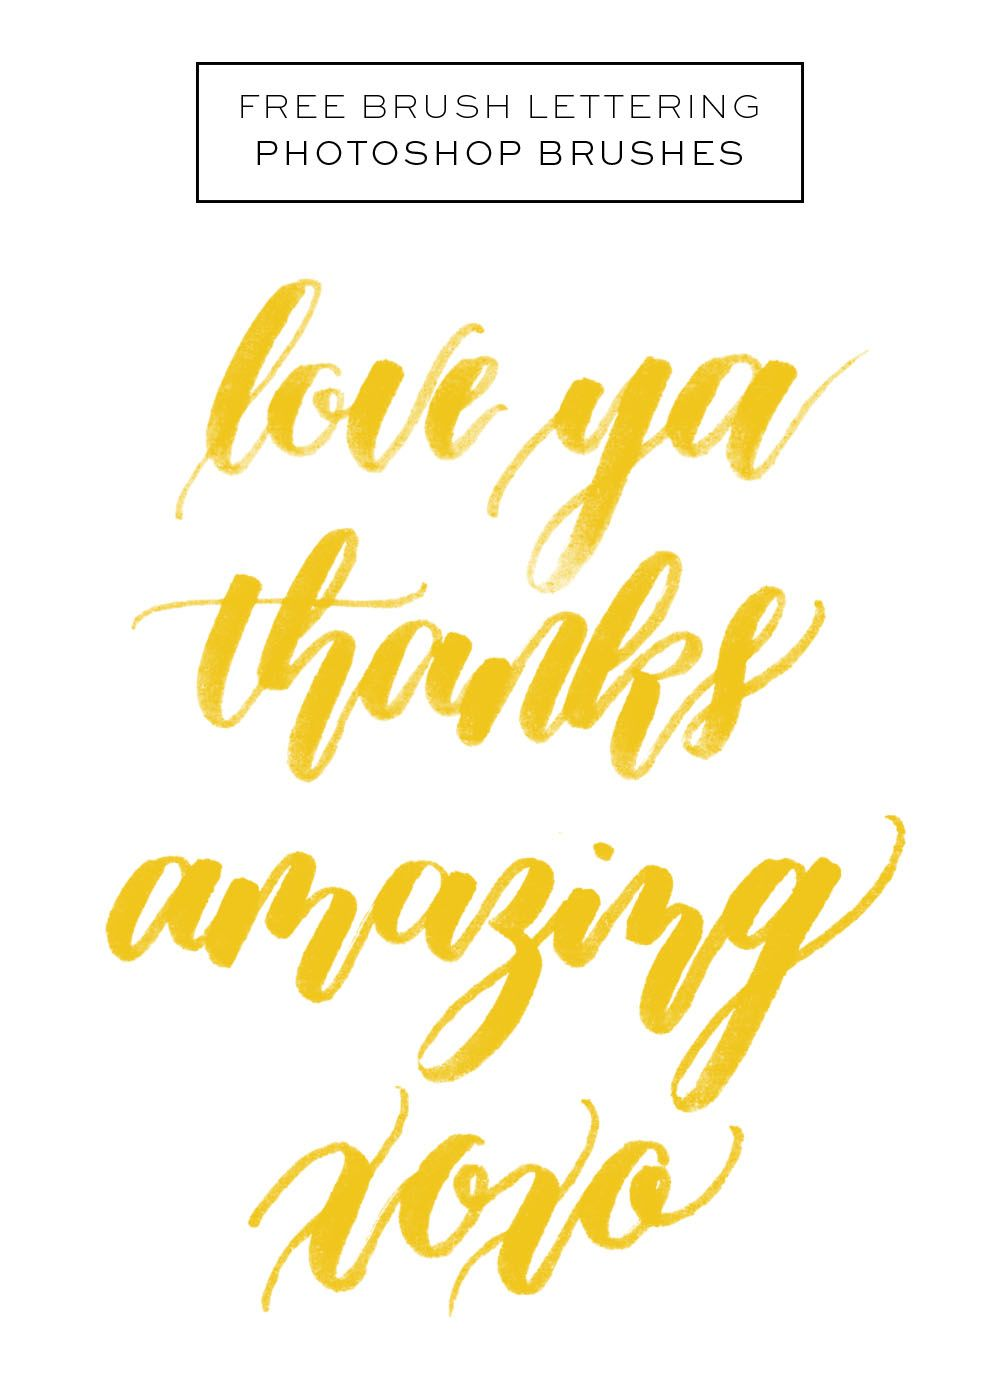 Free Brush Lettering Photoshop Brushes | happy hands project ...